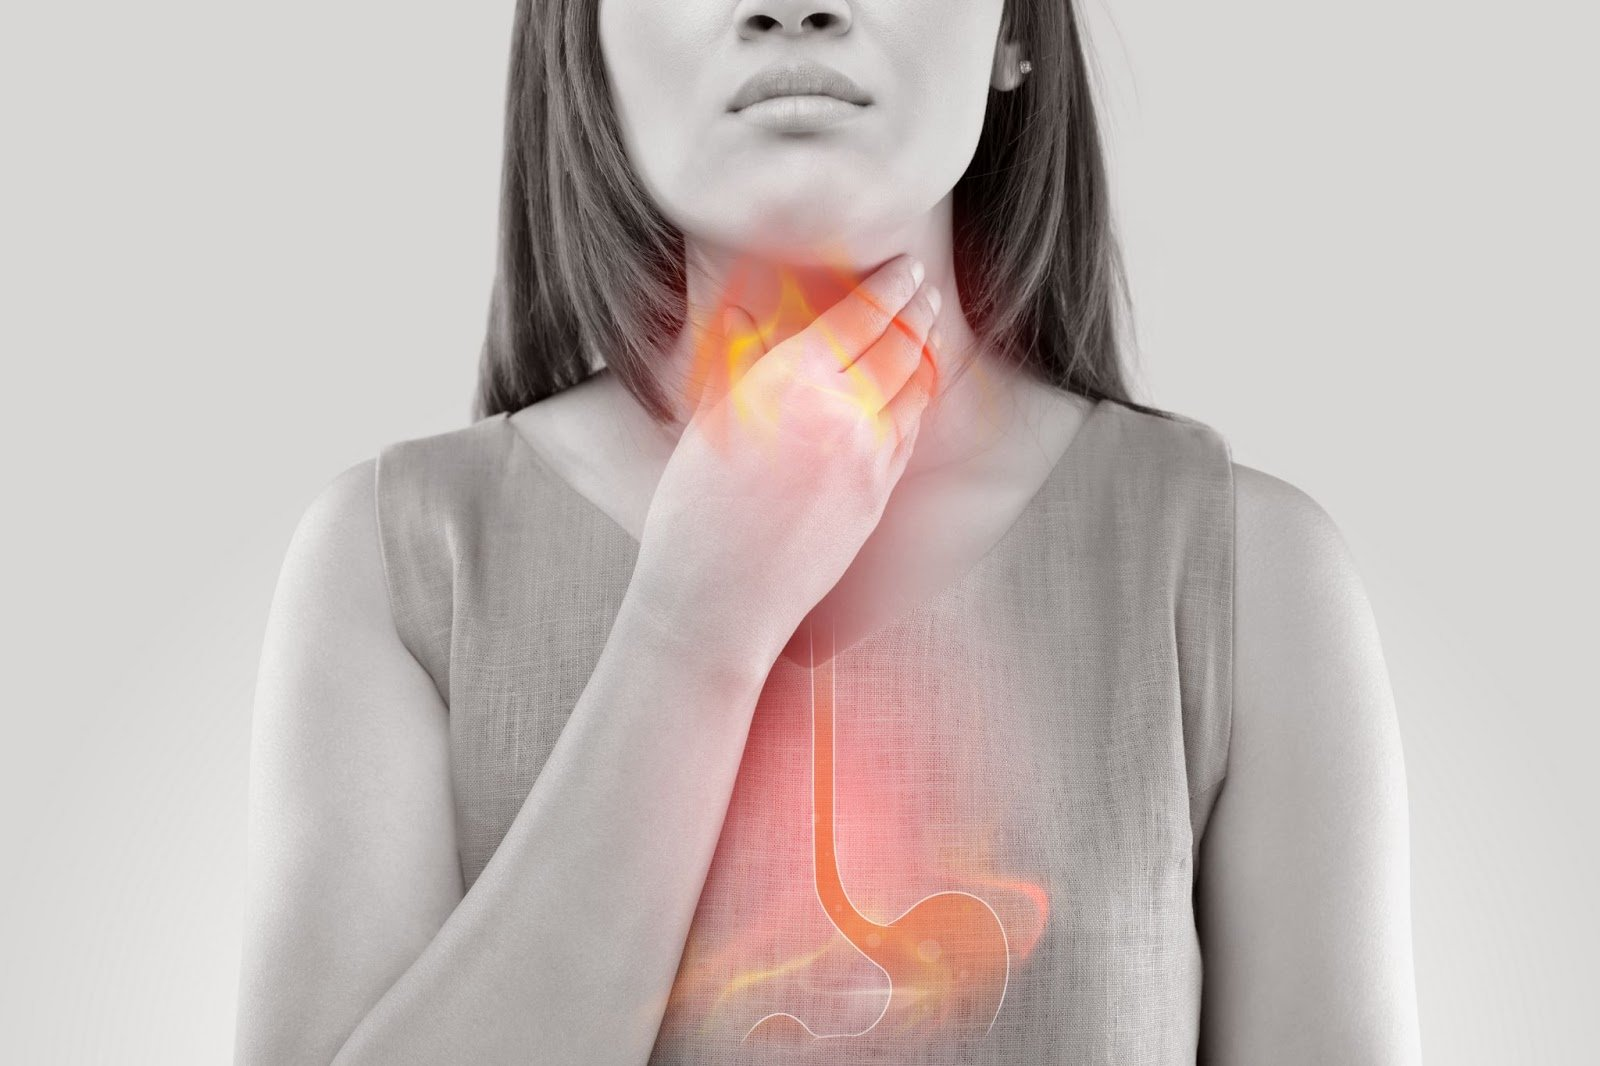 laryngopharyngeal reflux: Woman touching her throat overlaid with an illustration depicting acid reflux